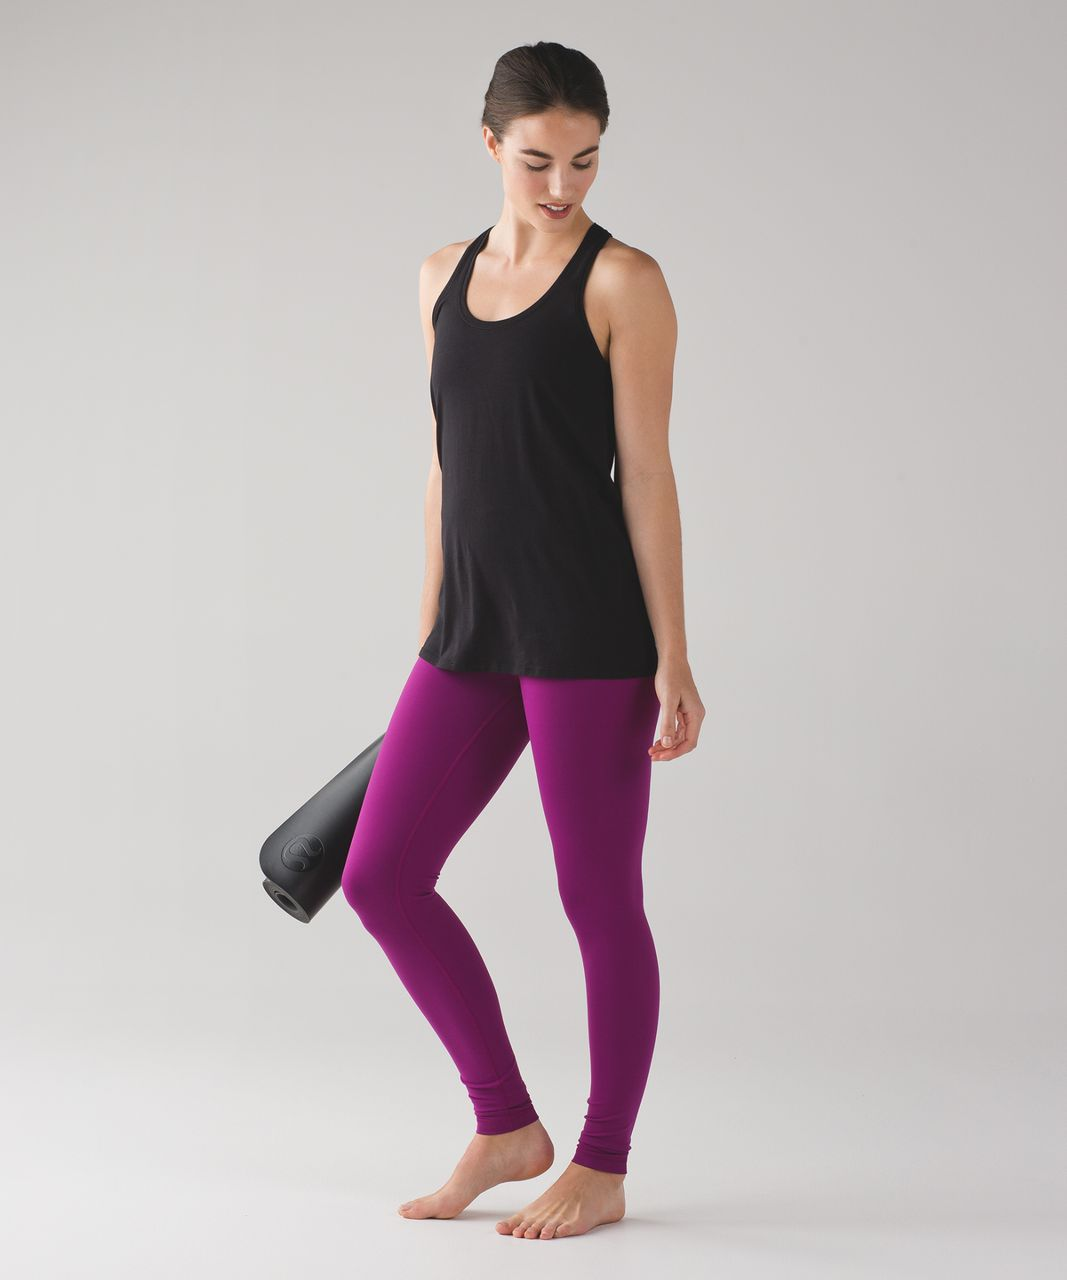 Lululemon Wunder Under Pant (Hi-Rise) (Full-On Luon) - Regal Plum